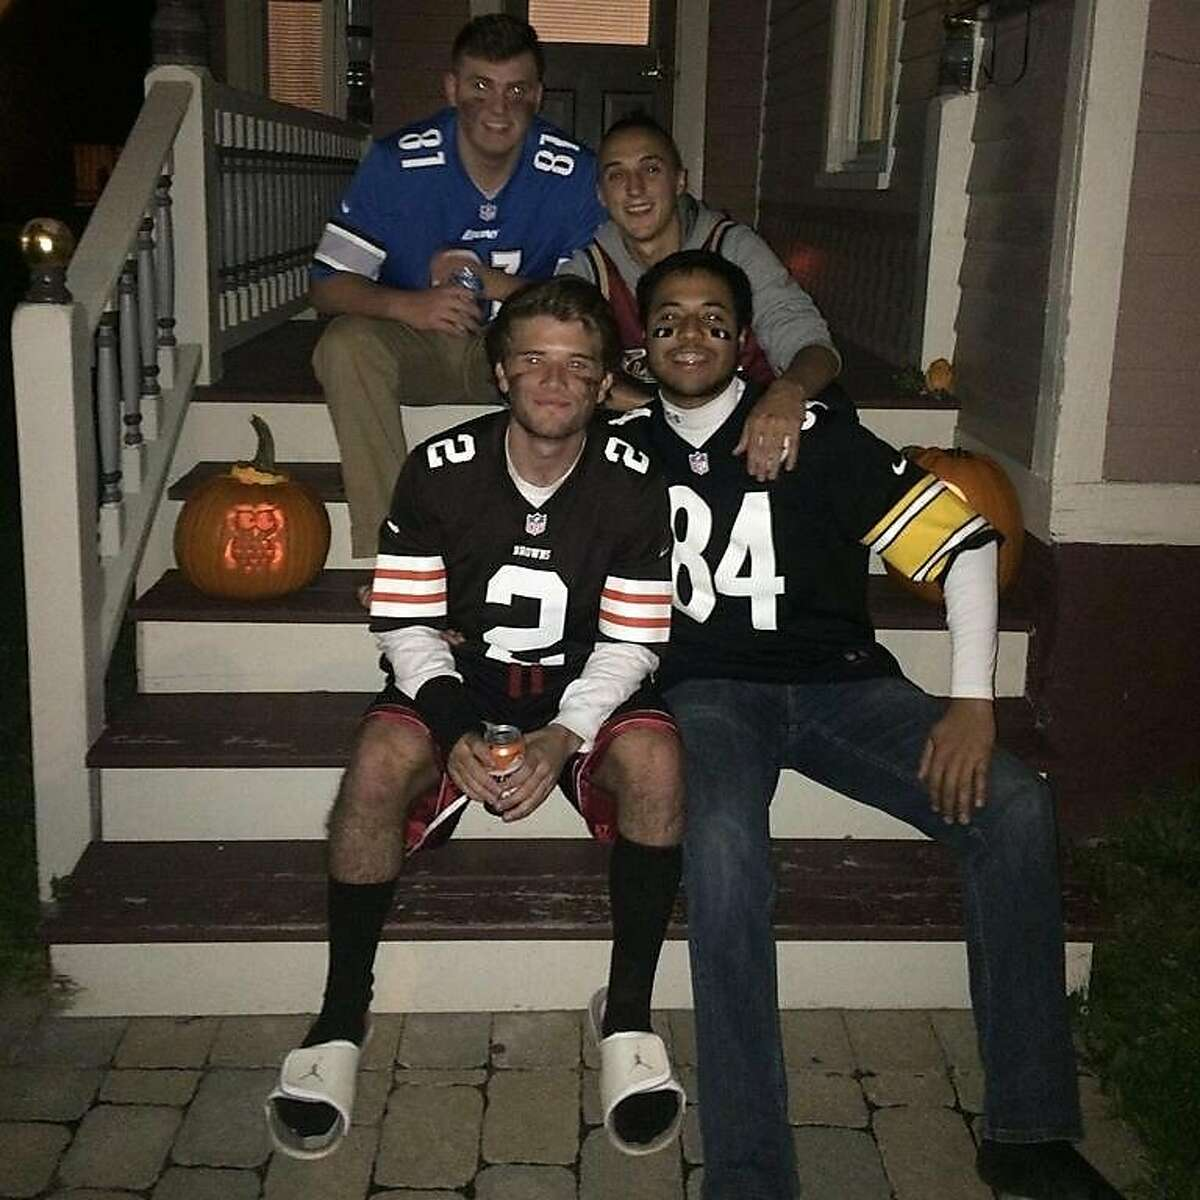 Trevor Irby celebrating Halloween with friends. Top left to right: Steven Wyrosdick, Ben Schreiber. Bottom left to right: Matt Hey, Trevor Irby